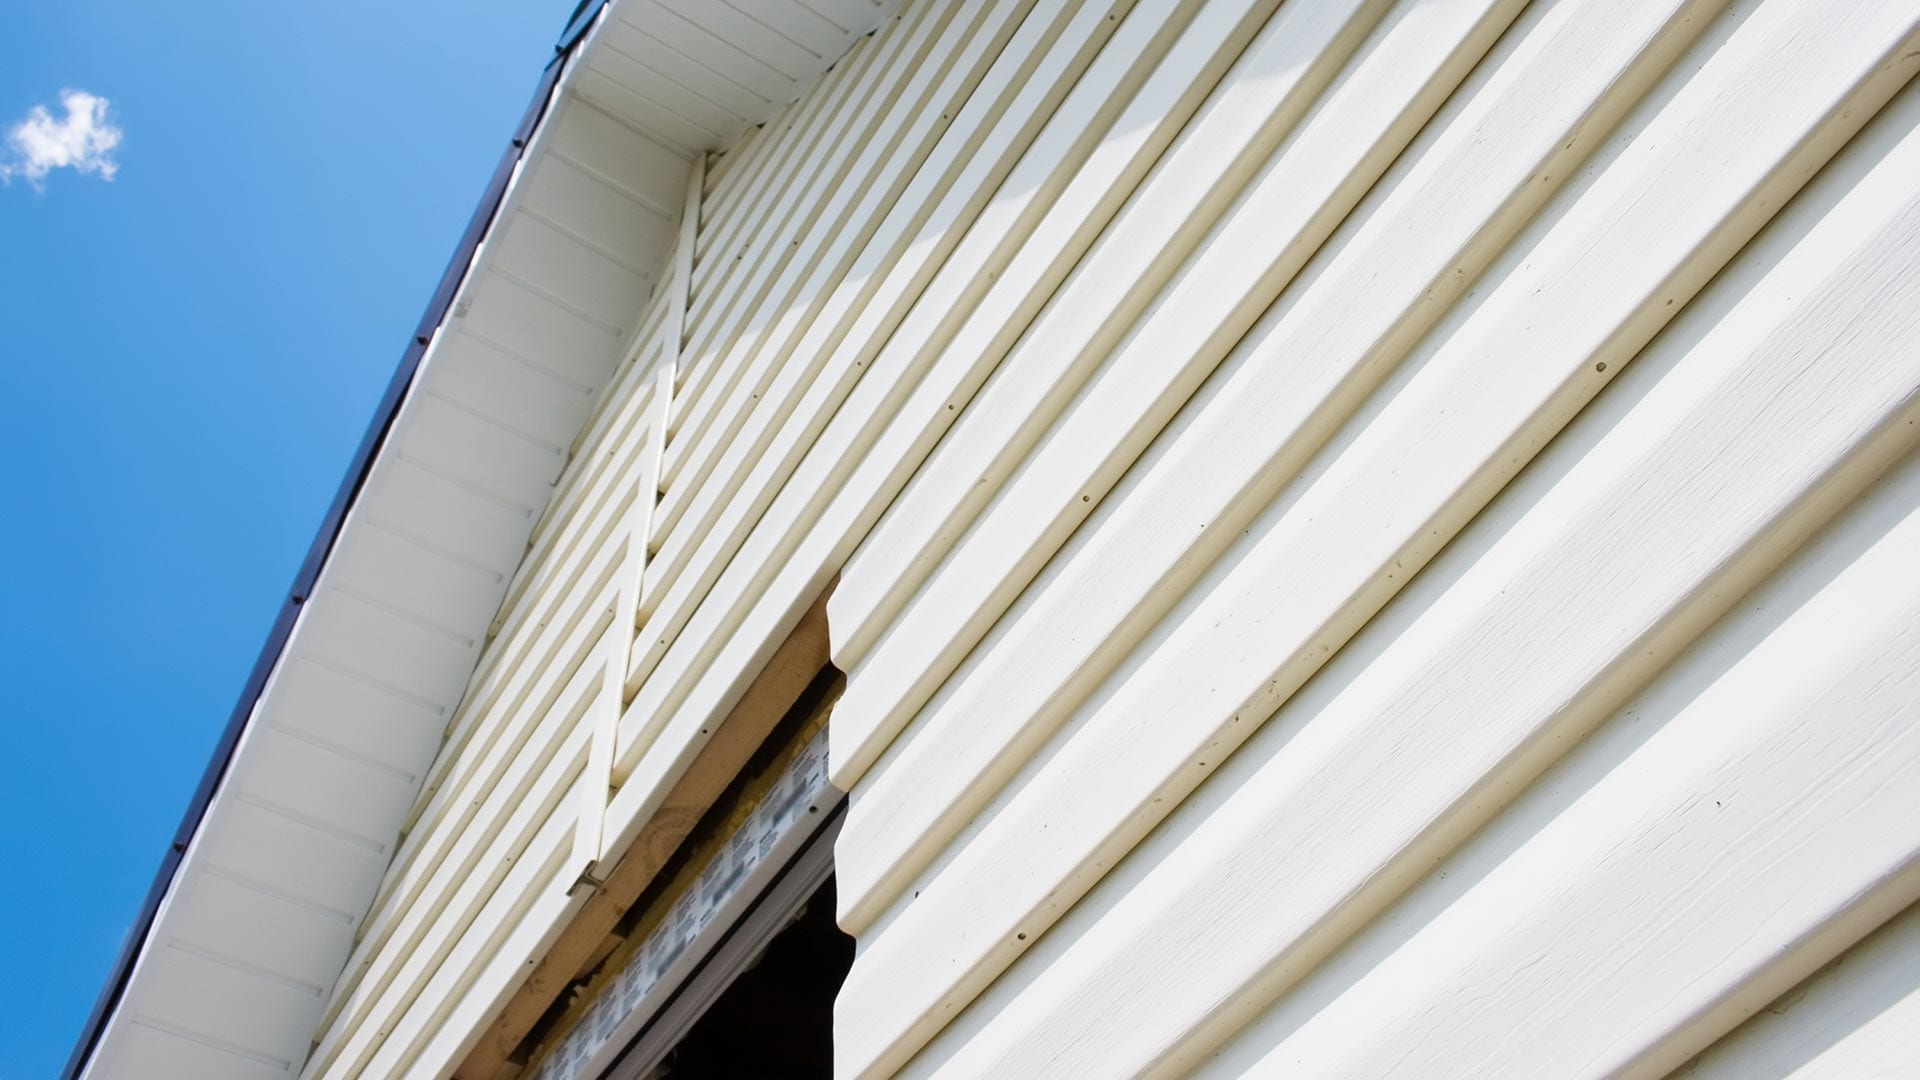 siding repair contractors for Durham NC siding repair services, siding replacement & siding installation services